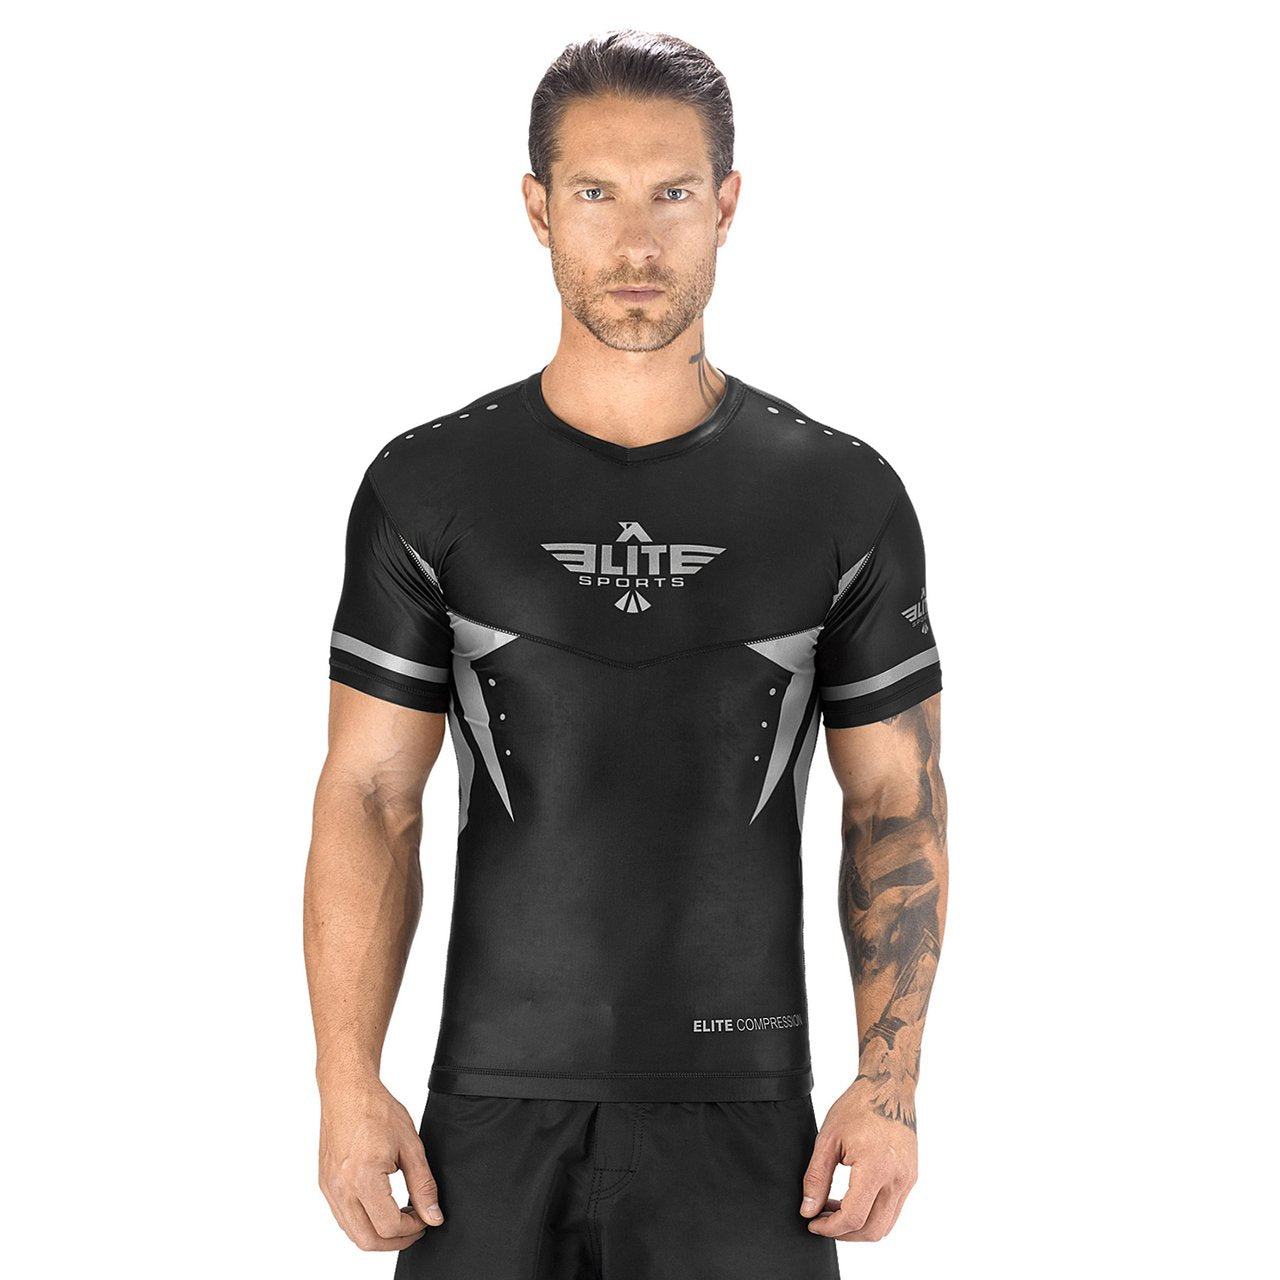 Elite Sports Star Series Sublimation Black/Gray Short Sleeve Brazilian Jiu Jitsu BJJ Rash Guard